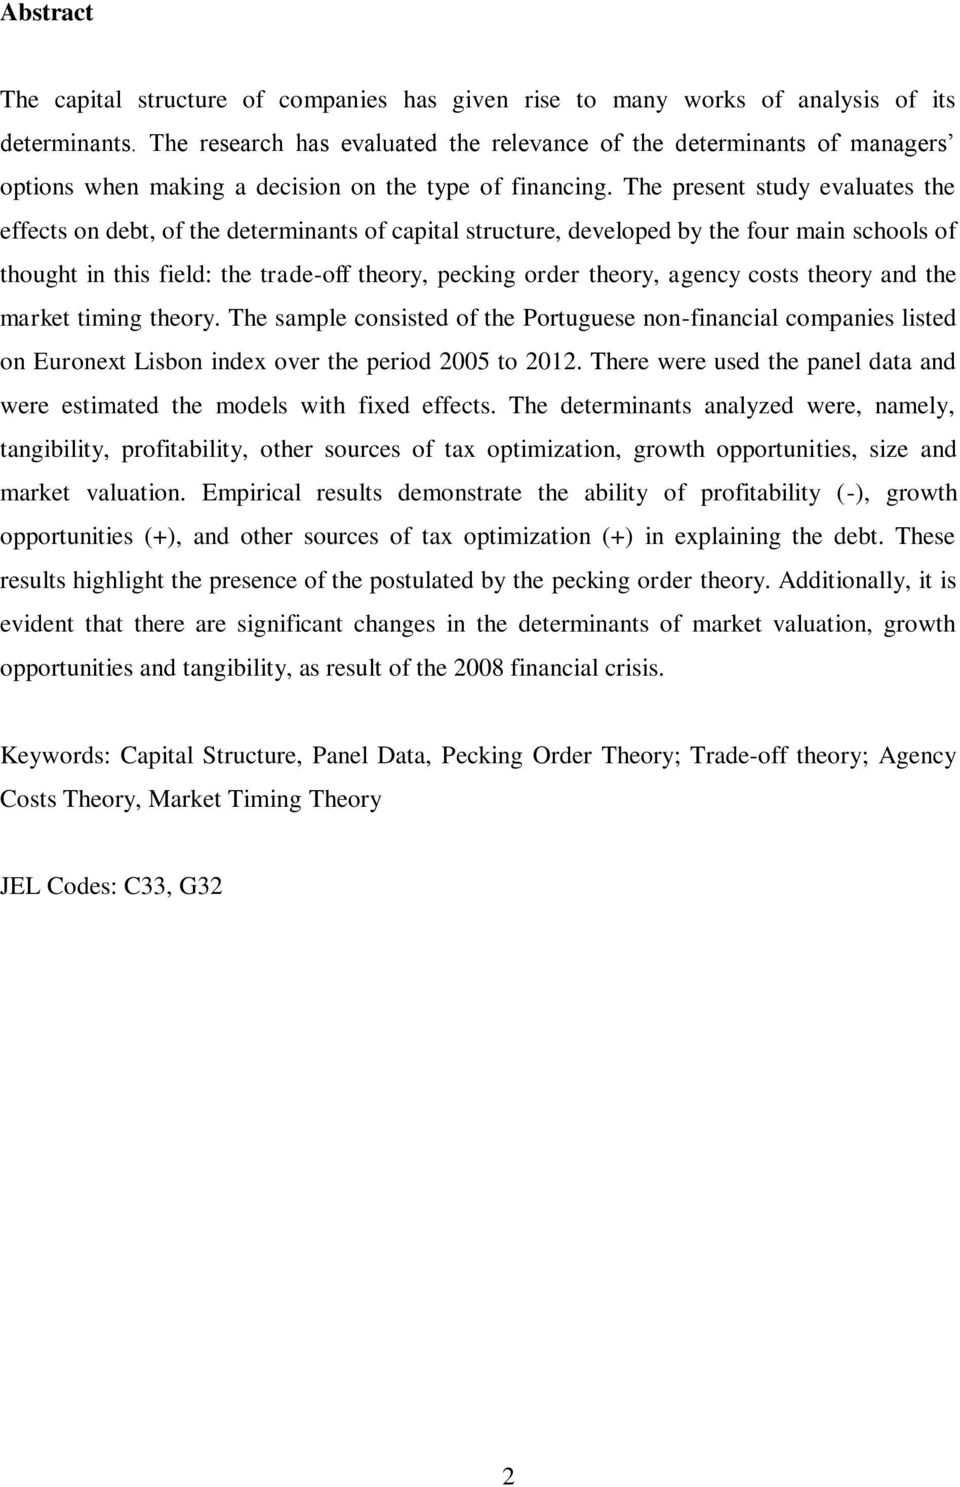 The present study evaluates the effects on debt, of the determinants of capital structure, developed by the four main schools of thought in this field: the trade-off theory, pecking order theory,